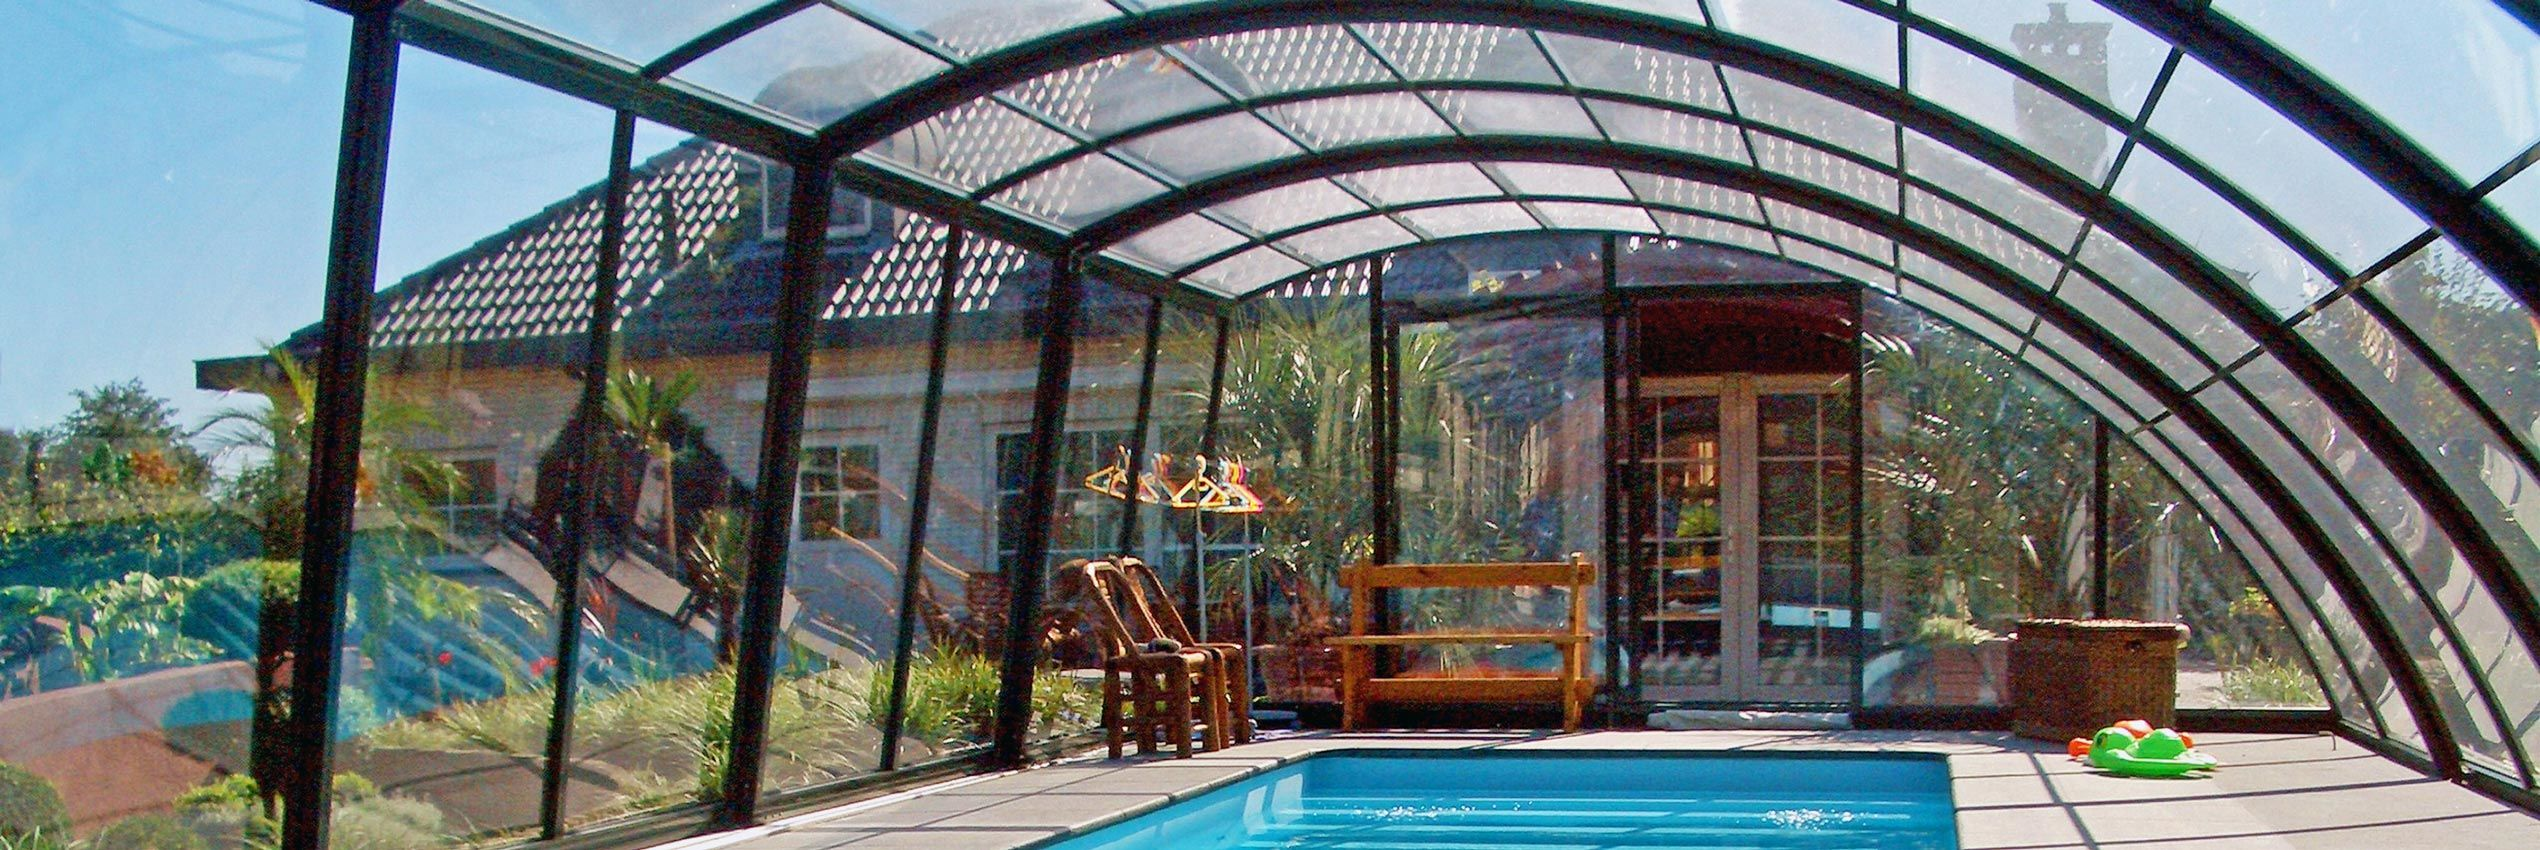 Closed pool enclosure Ravena